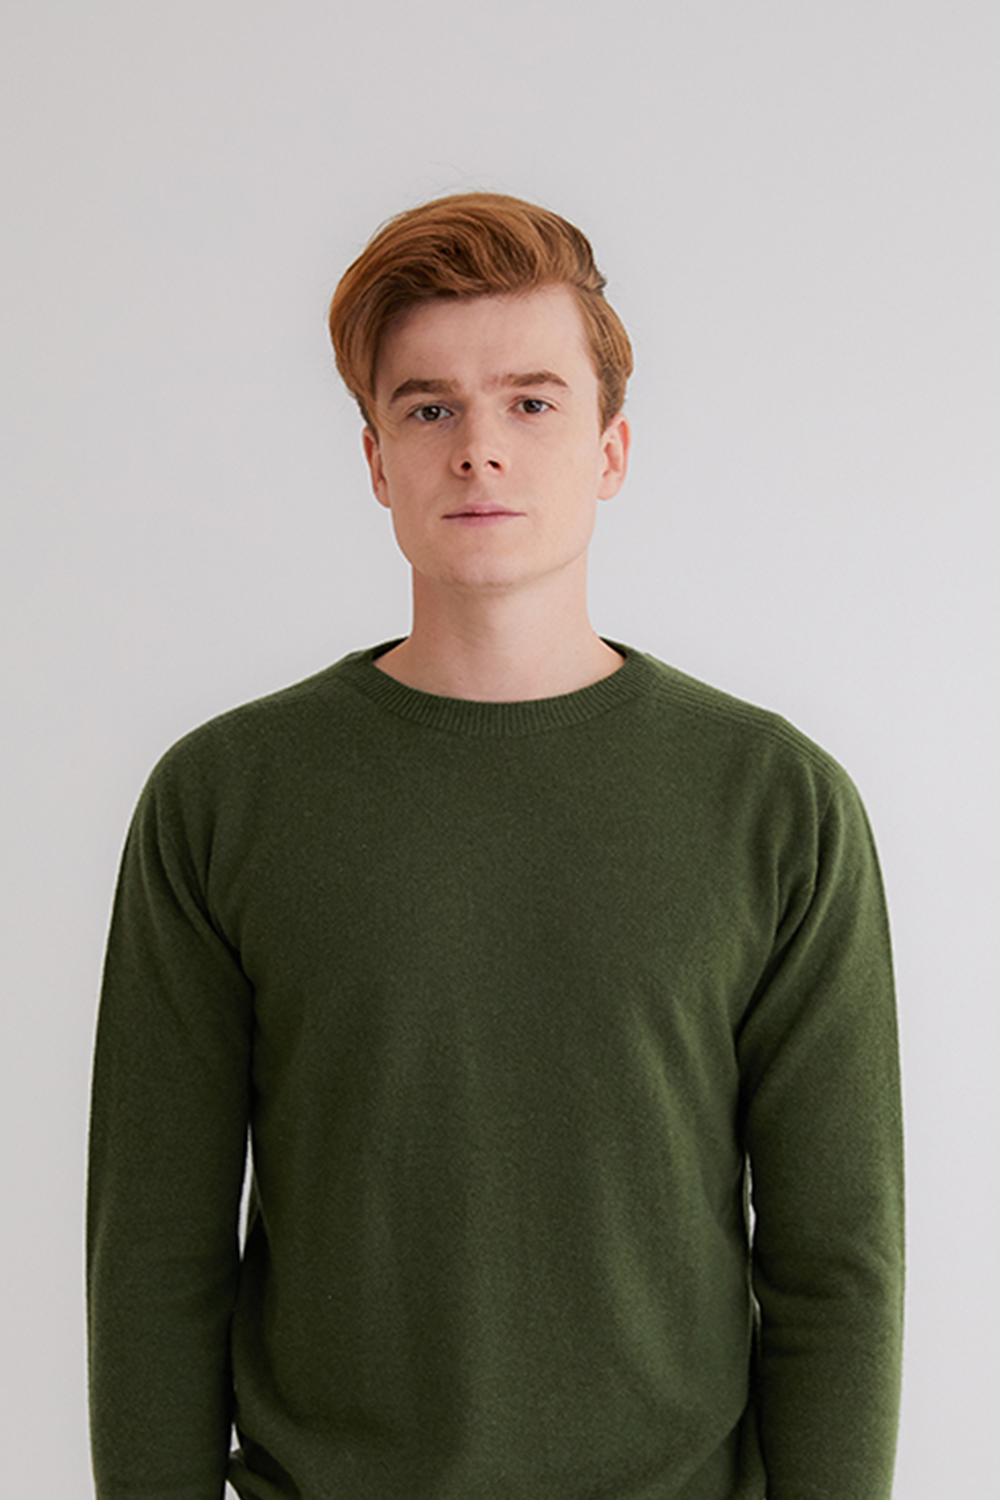 Pure cashmere100 whole-garment knitting roundneck pullover - Royal khaki (한정 수량)